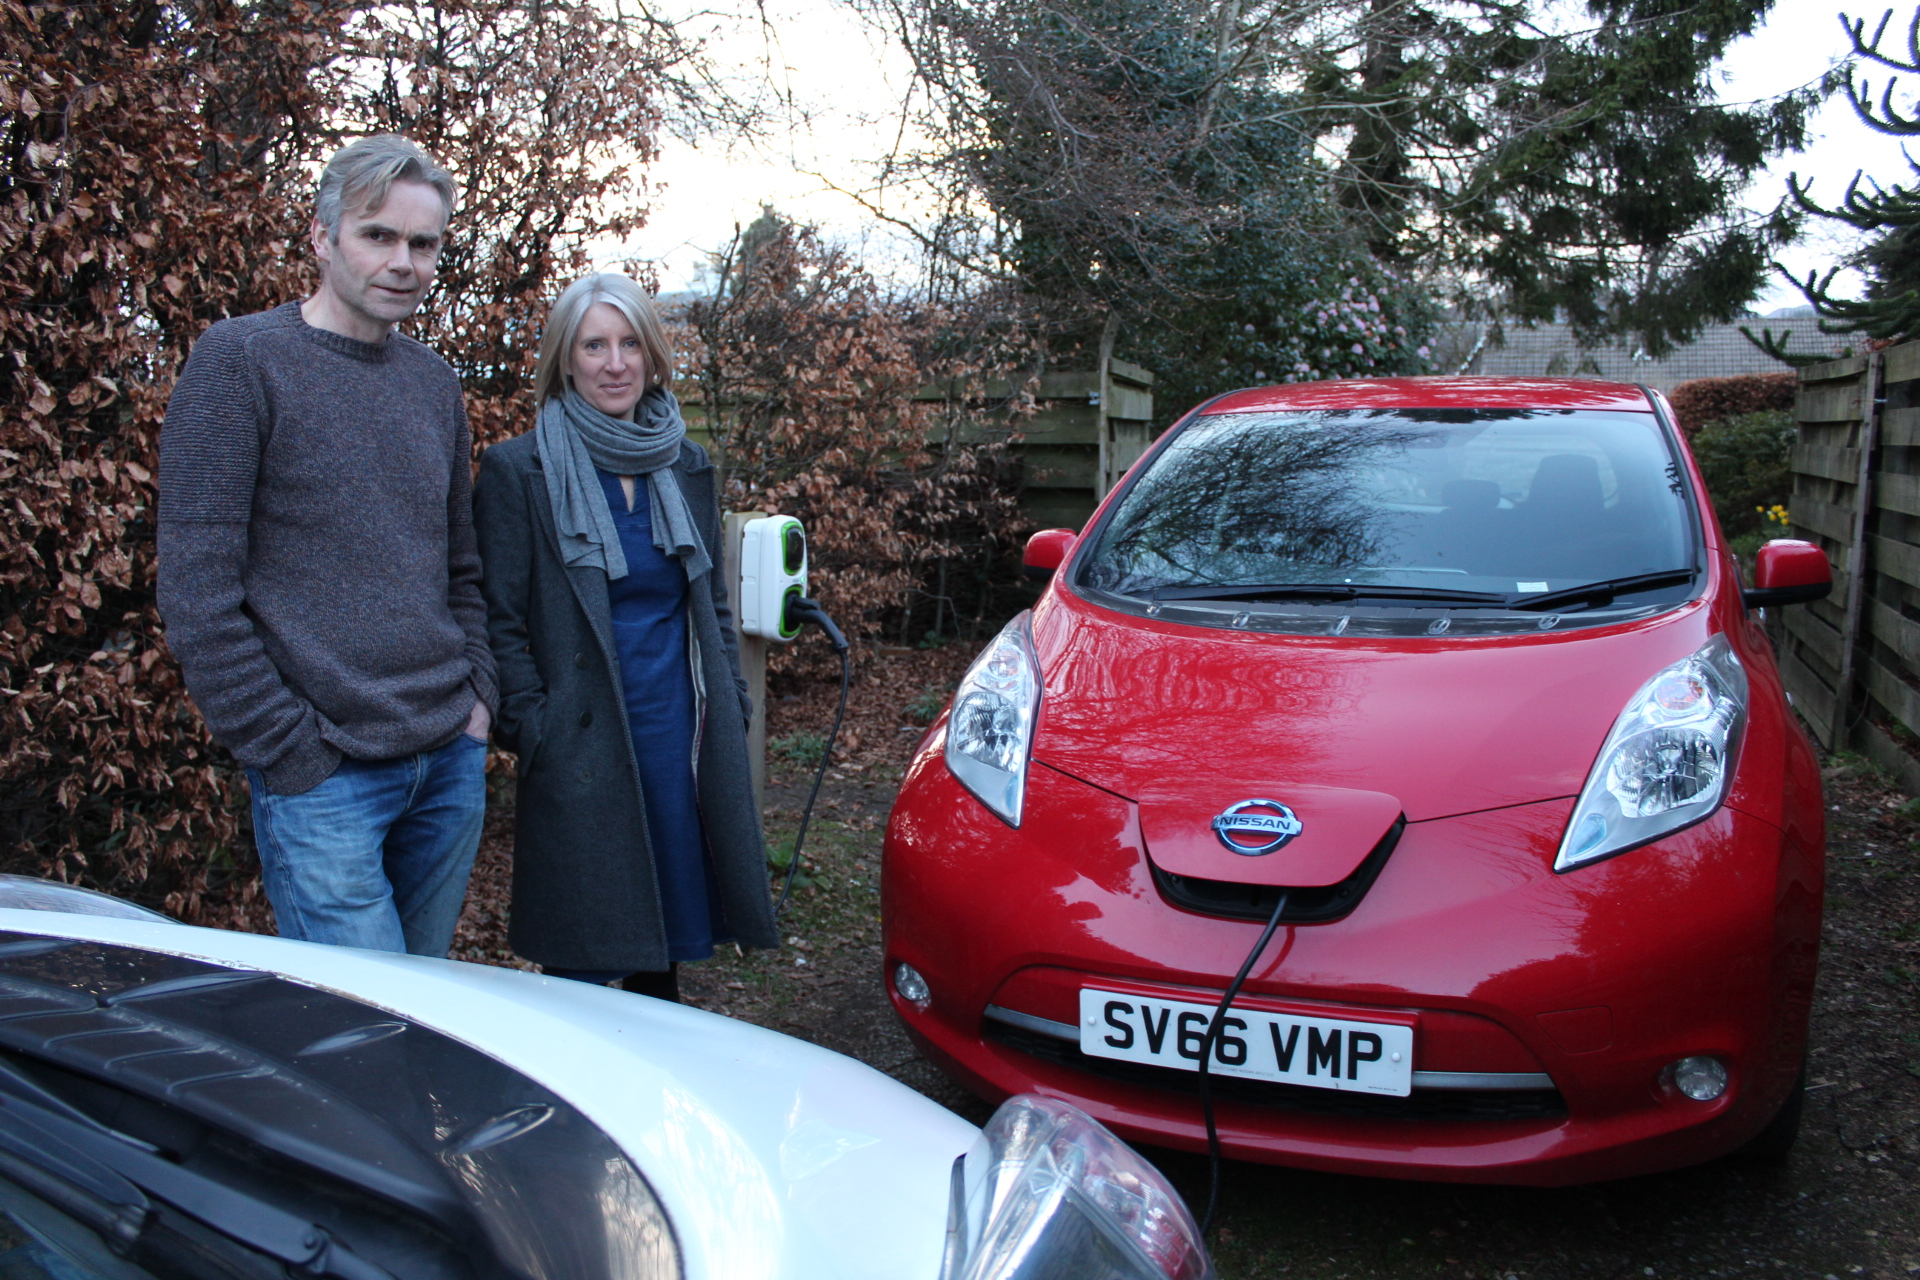 Alison Ritchie and John Paul Mason both own battery-powered Nissan Leafs